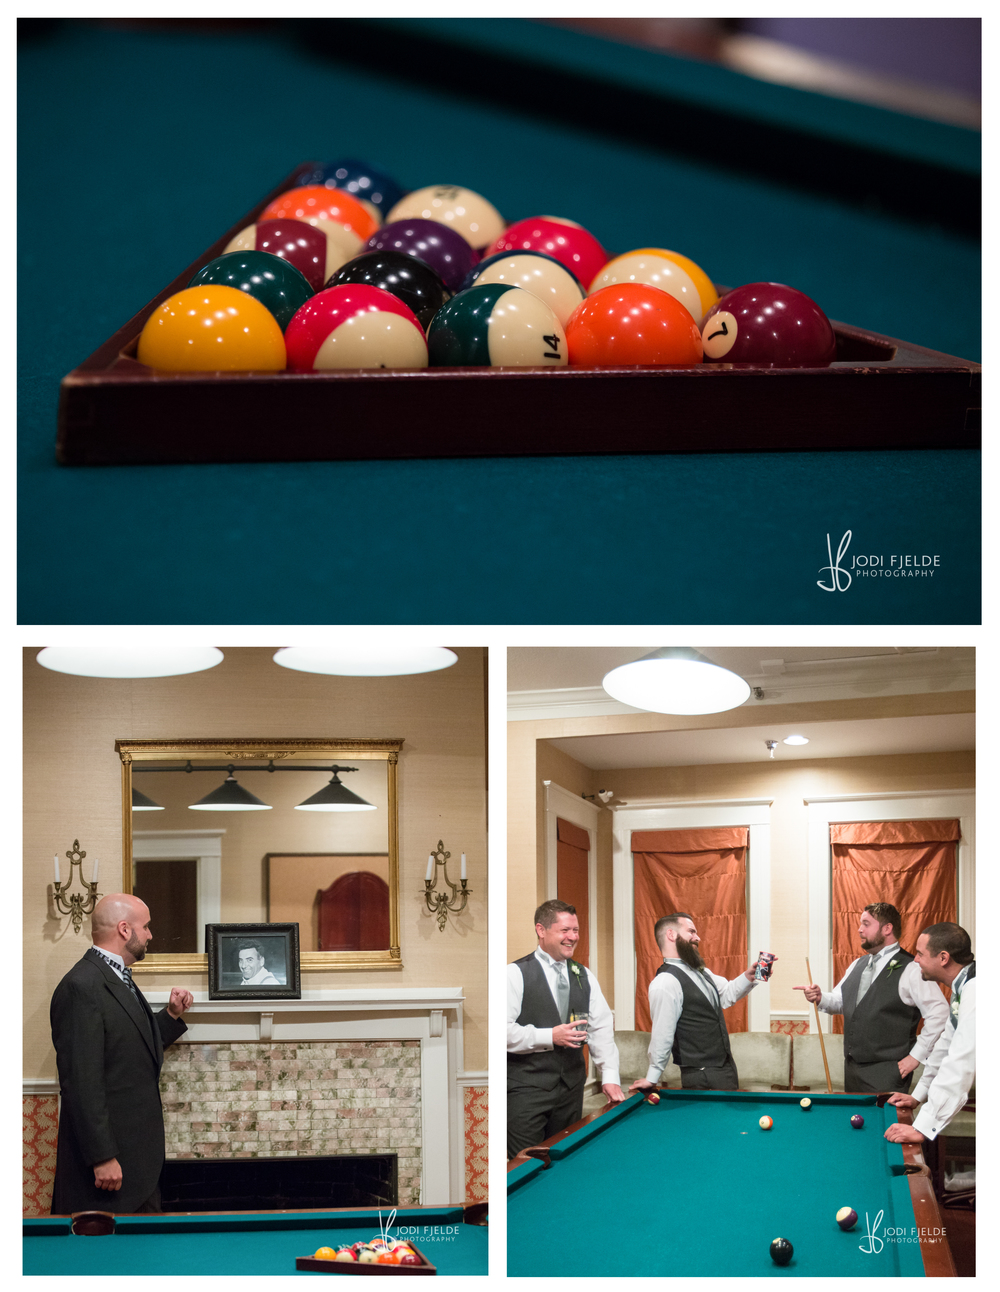 Highland_Manor_Apopka_Florida_wedding_Jackie_&_Tim_photography_jodi_Fjelde_photography-7.jpg